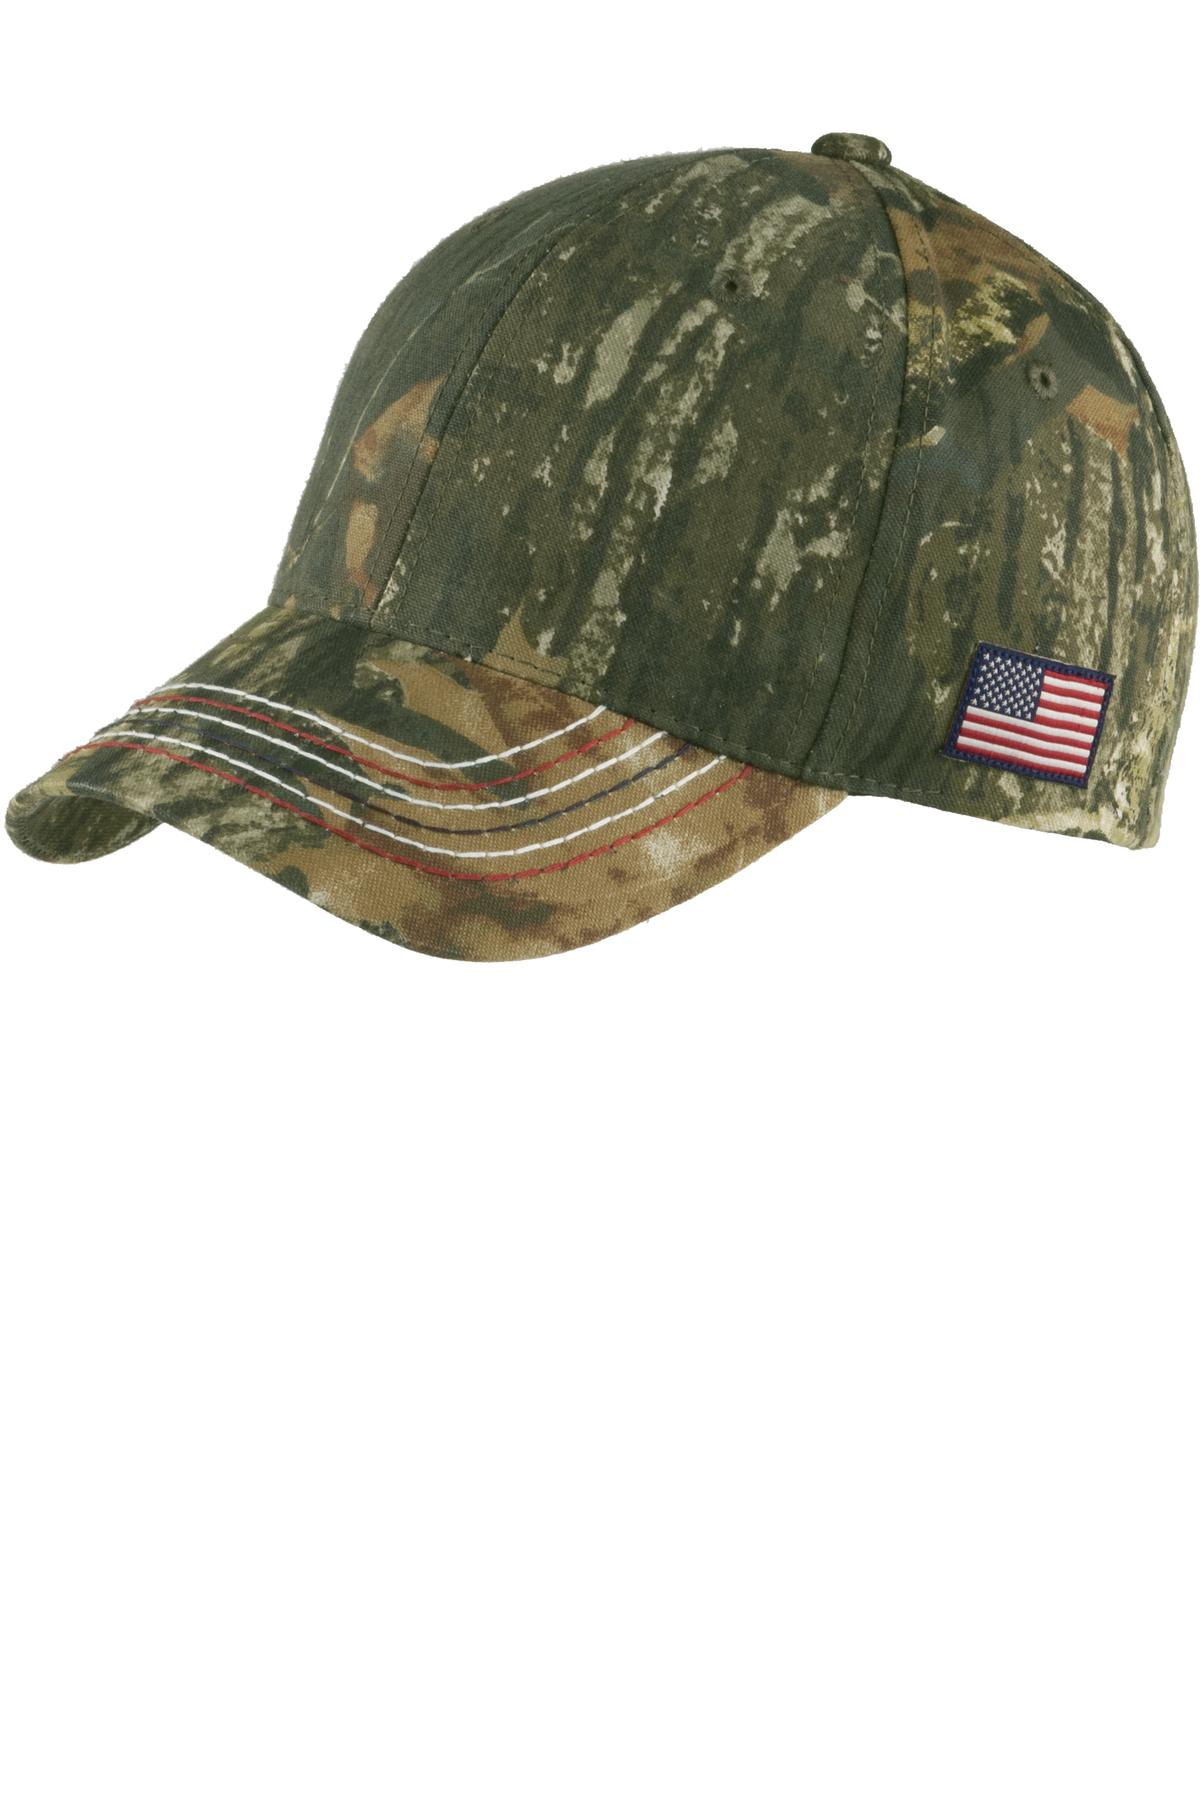 Port Authority ®  Americana Contrast Stitch Camouflage Cap. C909 - Mossy Oak New Break-Up